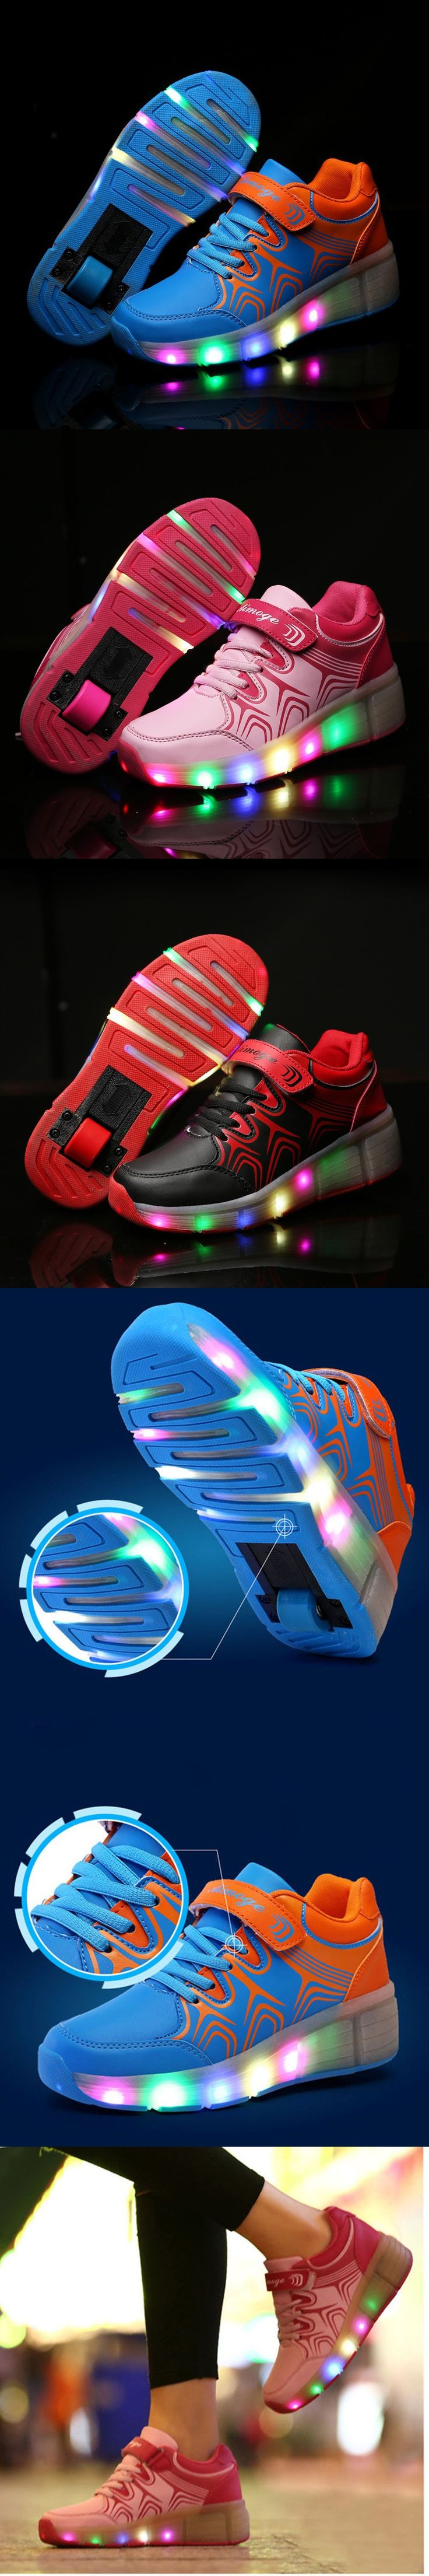 Adult Heelys Children Roller Shoes With Wheel Boy Girl LED Lighted Flashing Roller Skates Kids Sneakers Zapatillas Con Ruedas